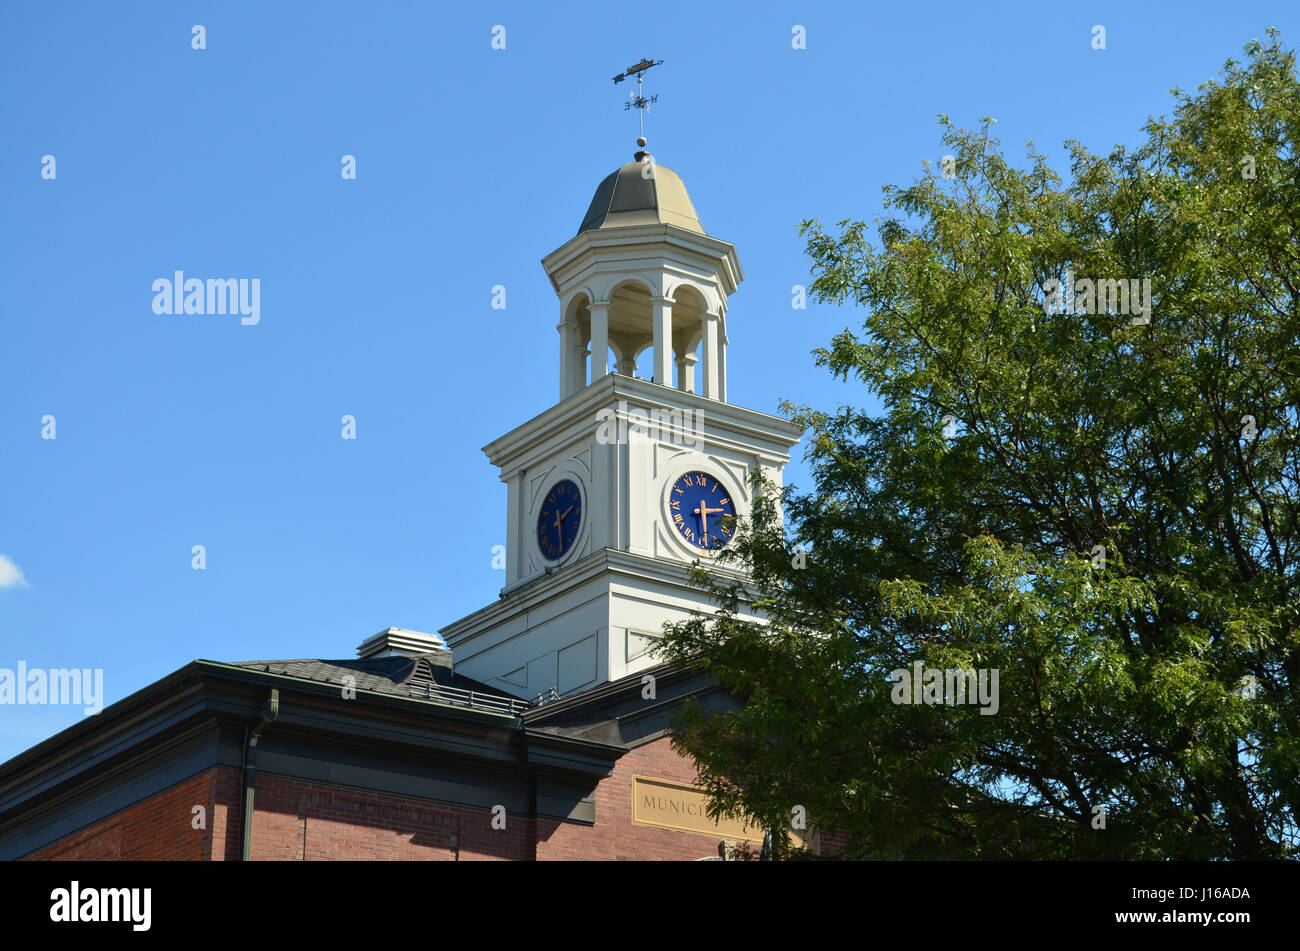 Fairport NY town hall tower. - Stock Image